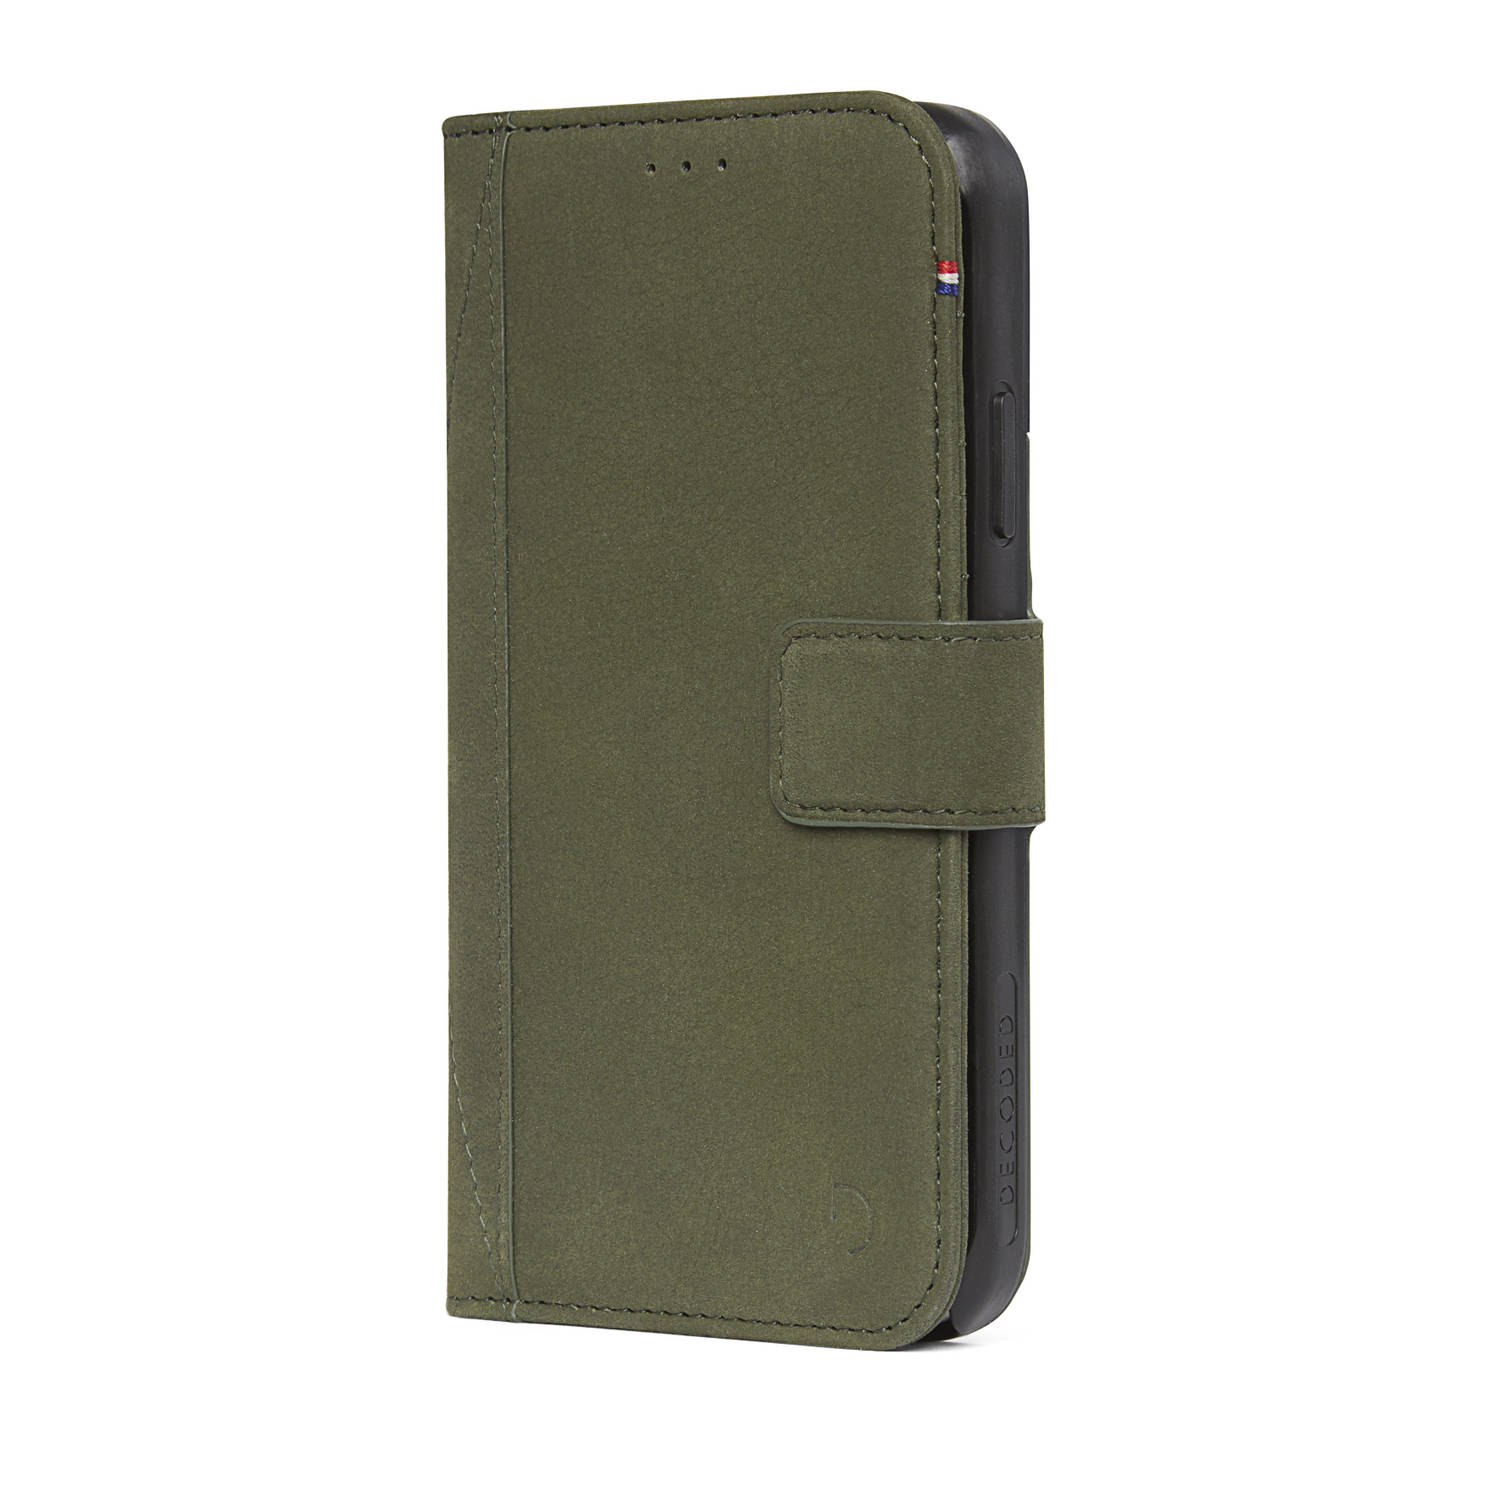 Leather Wallet Case met magneet sluiting voor iPhone X